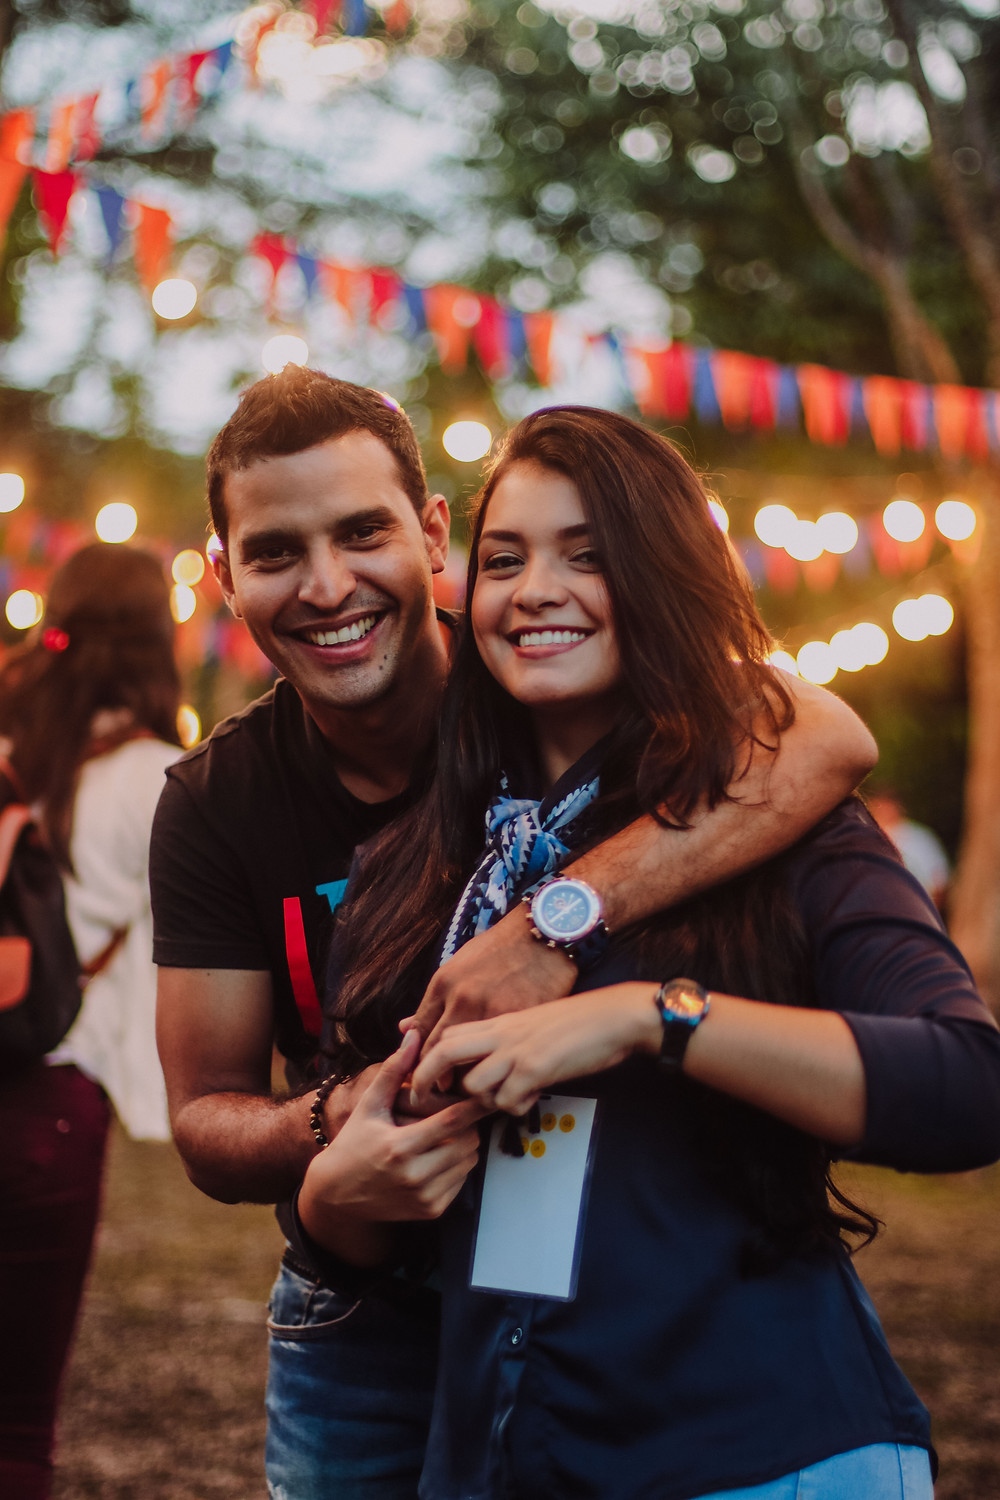 Couple enjoying festival with lights and bunting